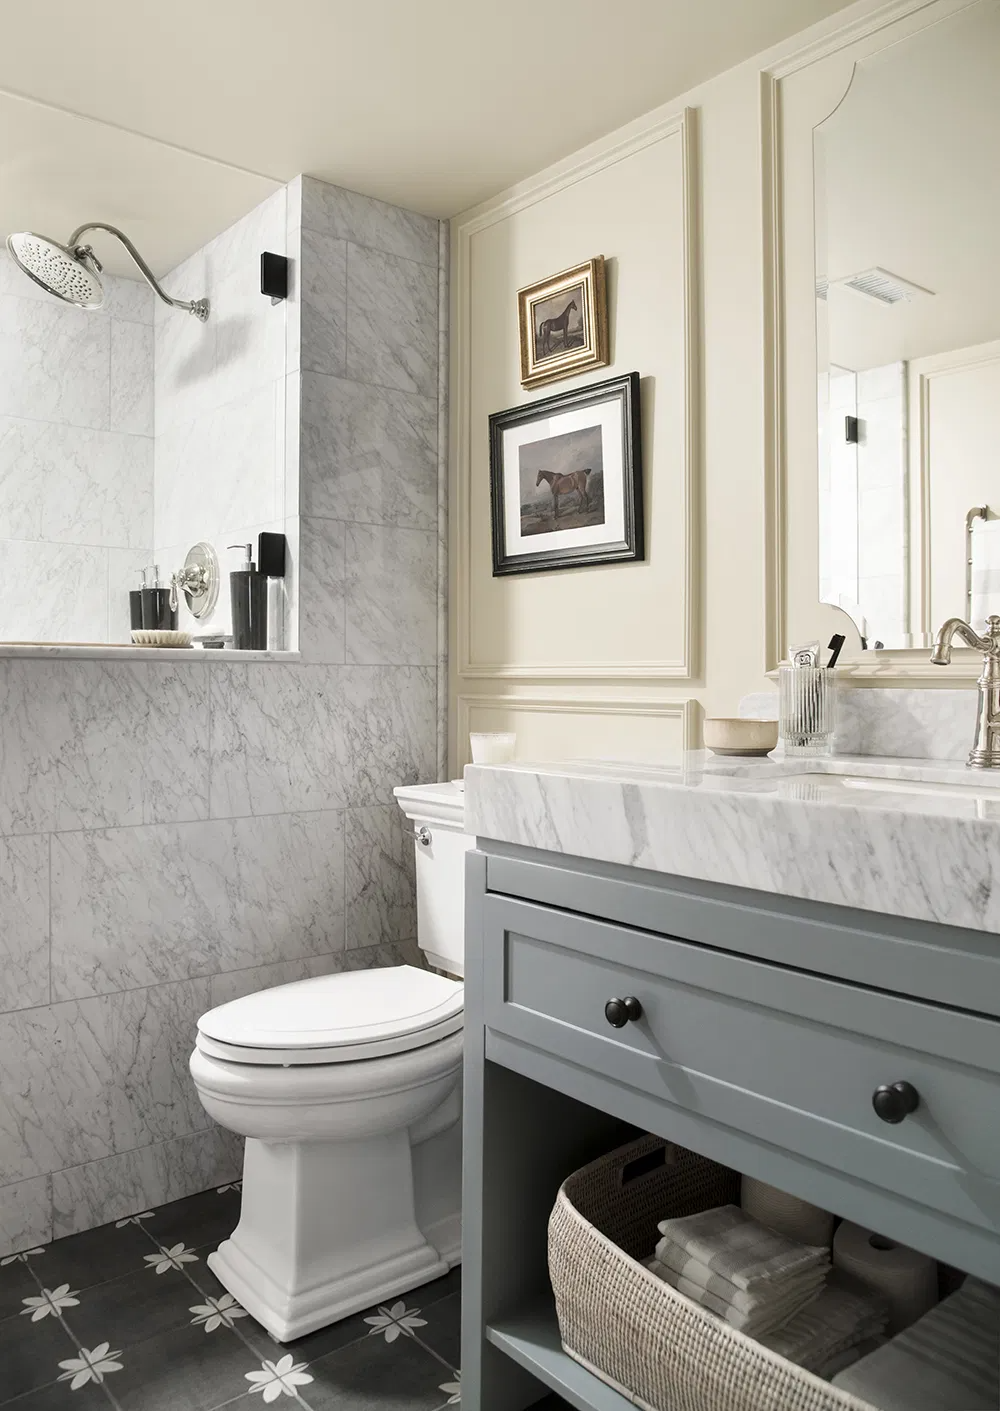 How To Make A Small Bathroom Look Larger Room For Tuesday In 2020 Small Bathroom Basement Bathroom Cheap Apartment Decorating